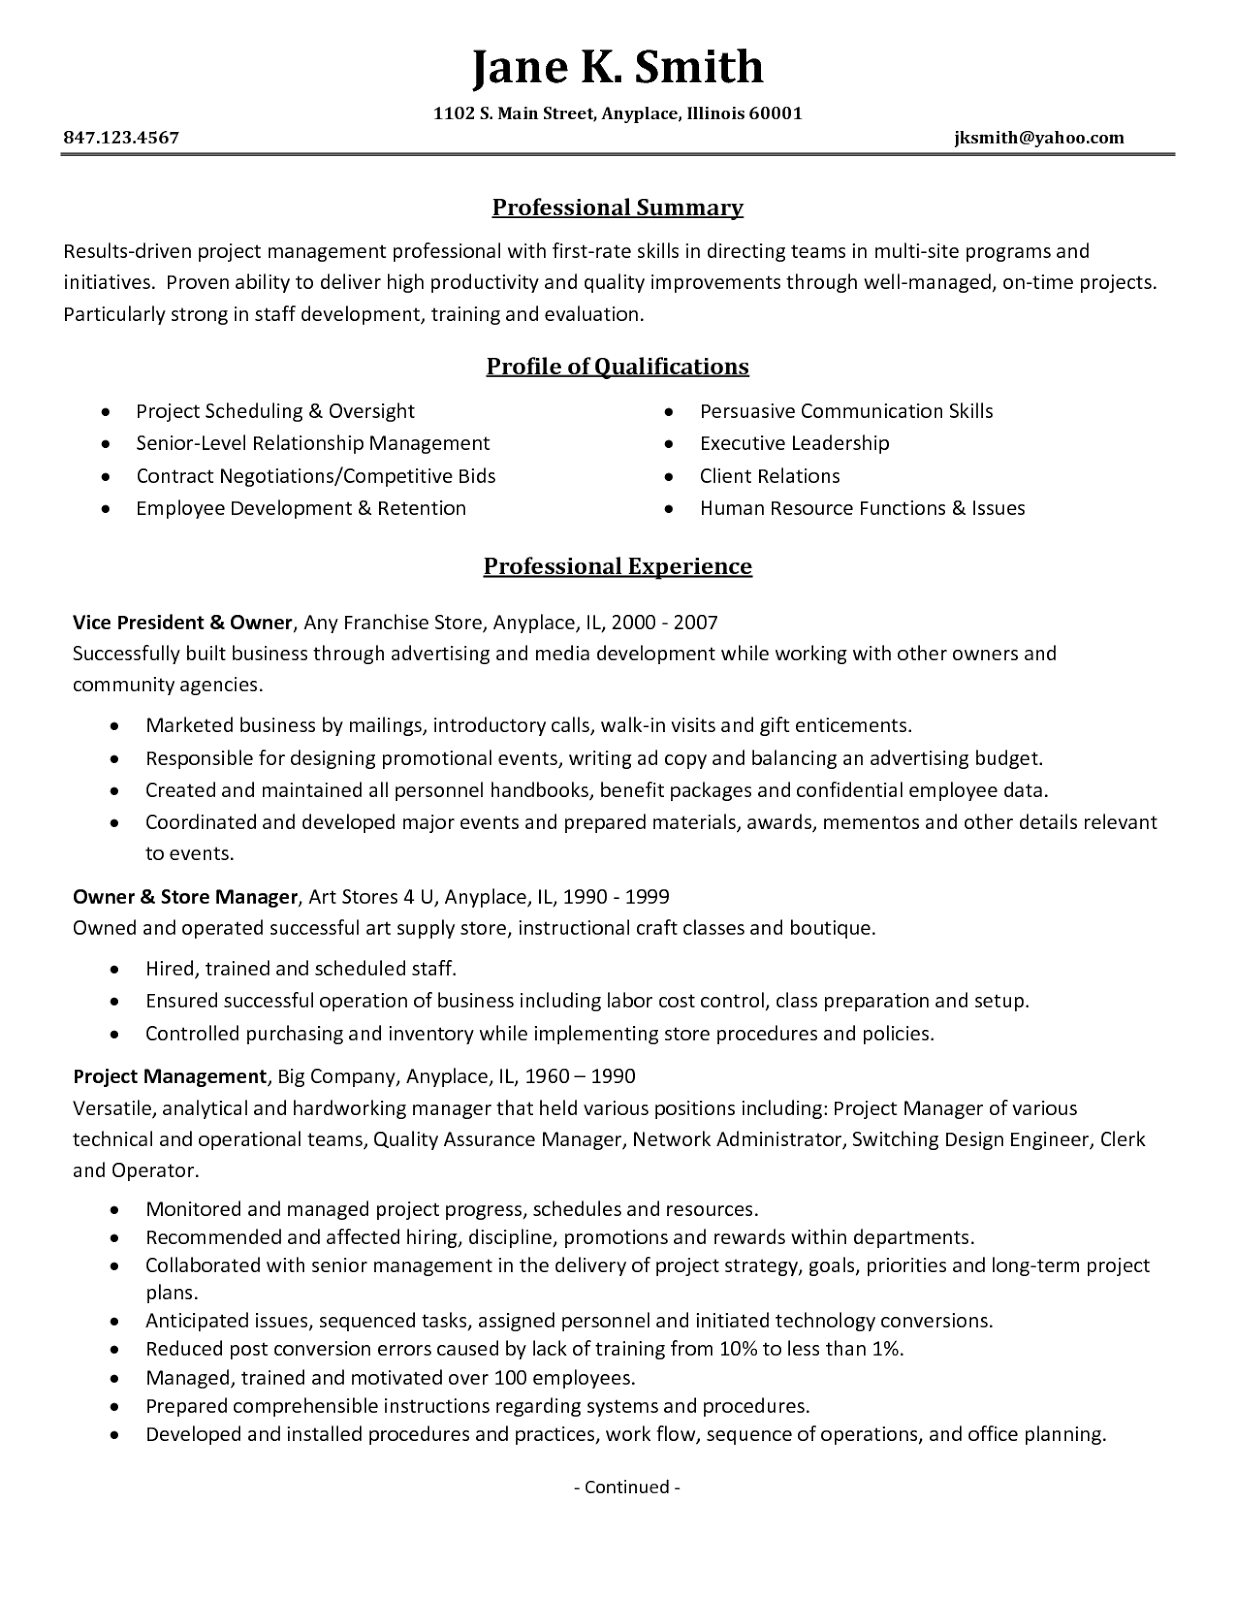 Project Management Experience On Resume Project Management Resume Samples 2016 Sample Resumes